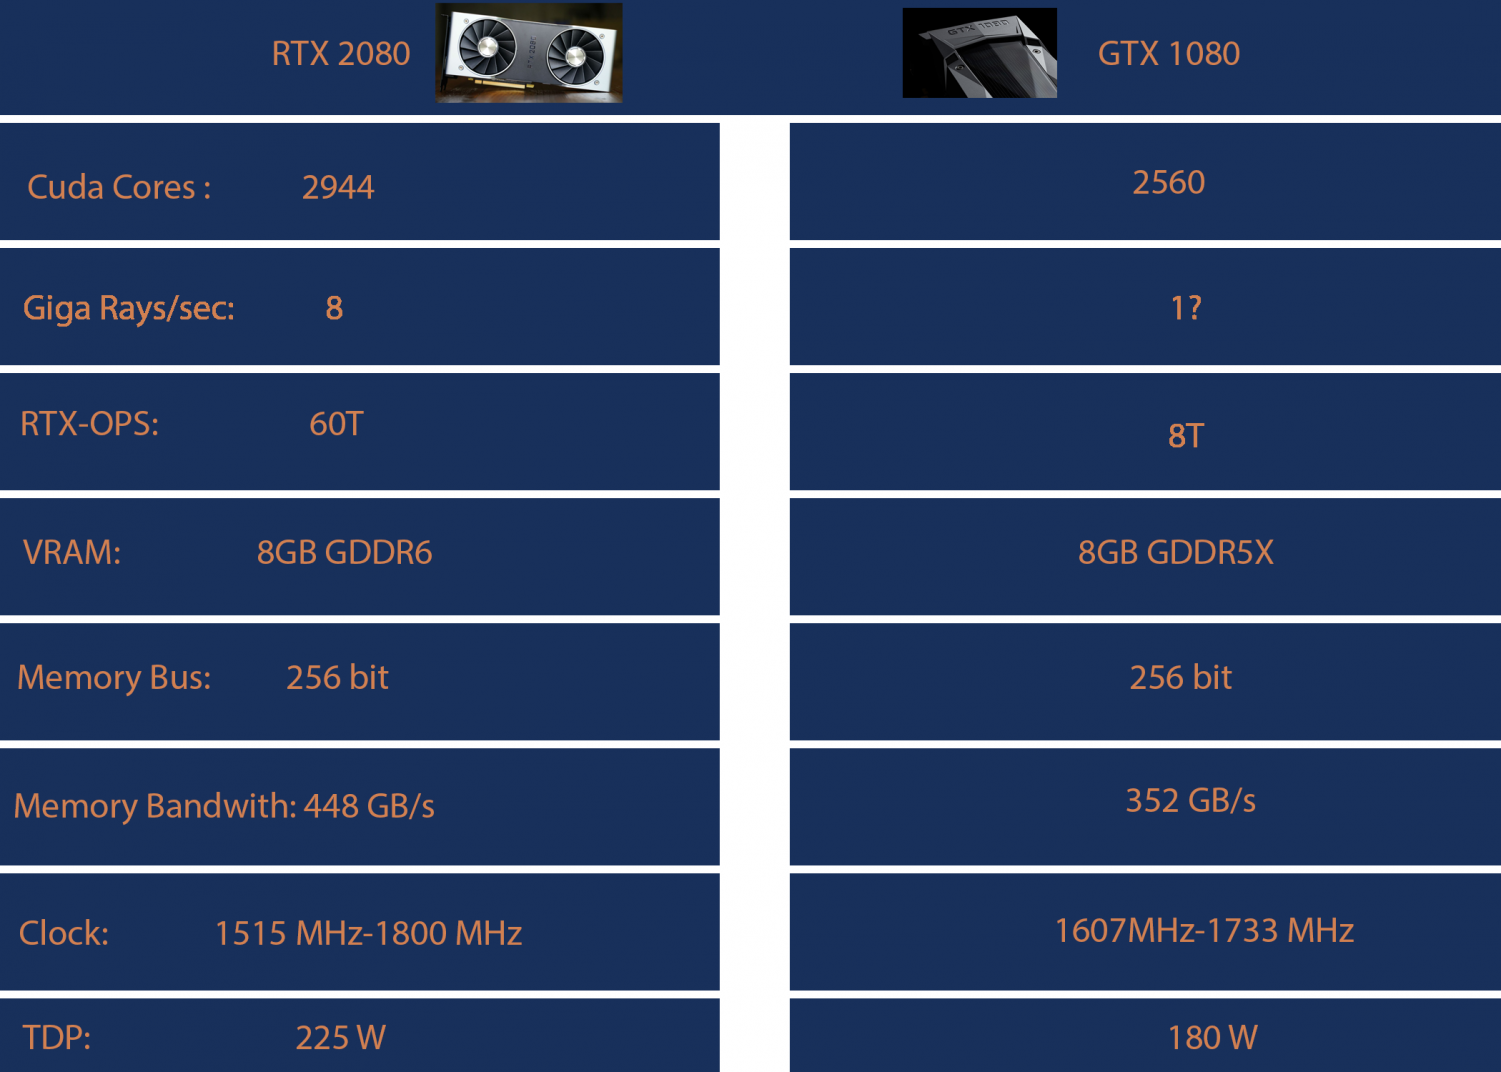 Image comparing the different specifications of an RTX 2080 and GTX 1080. Graphic courtesy of Cristian Rosales-Cardenas ('21).